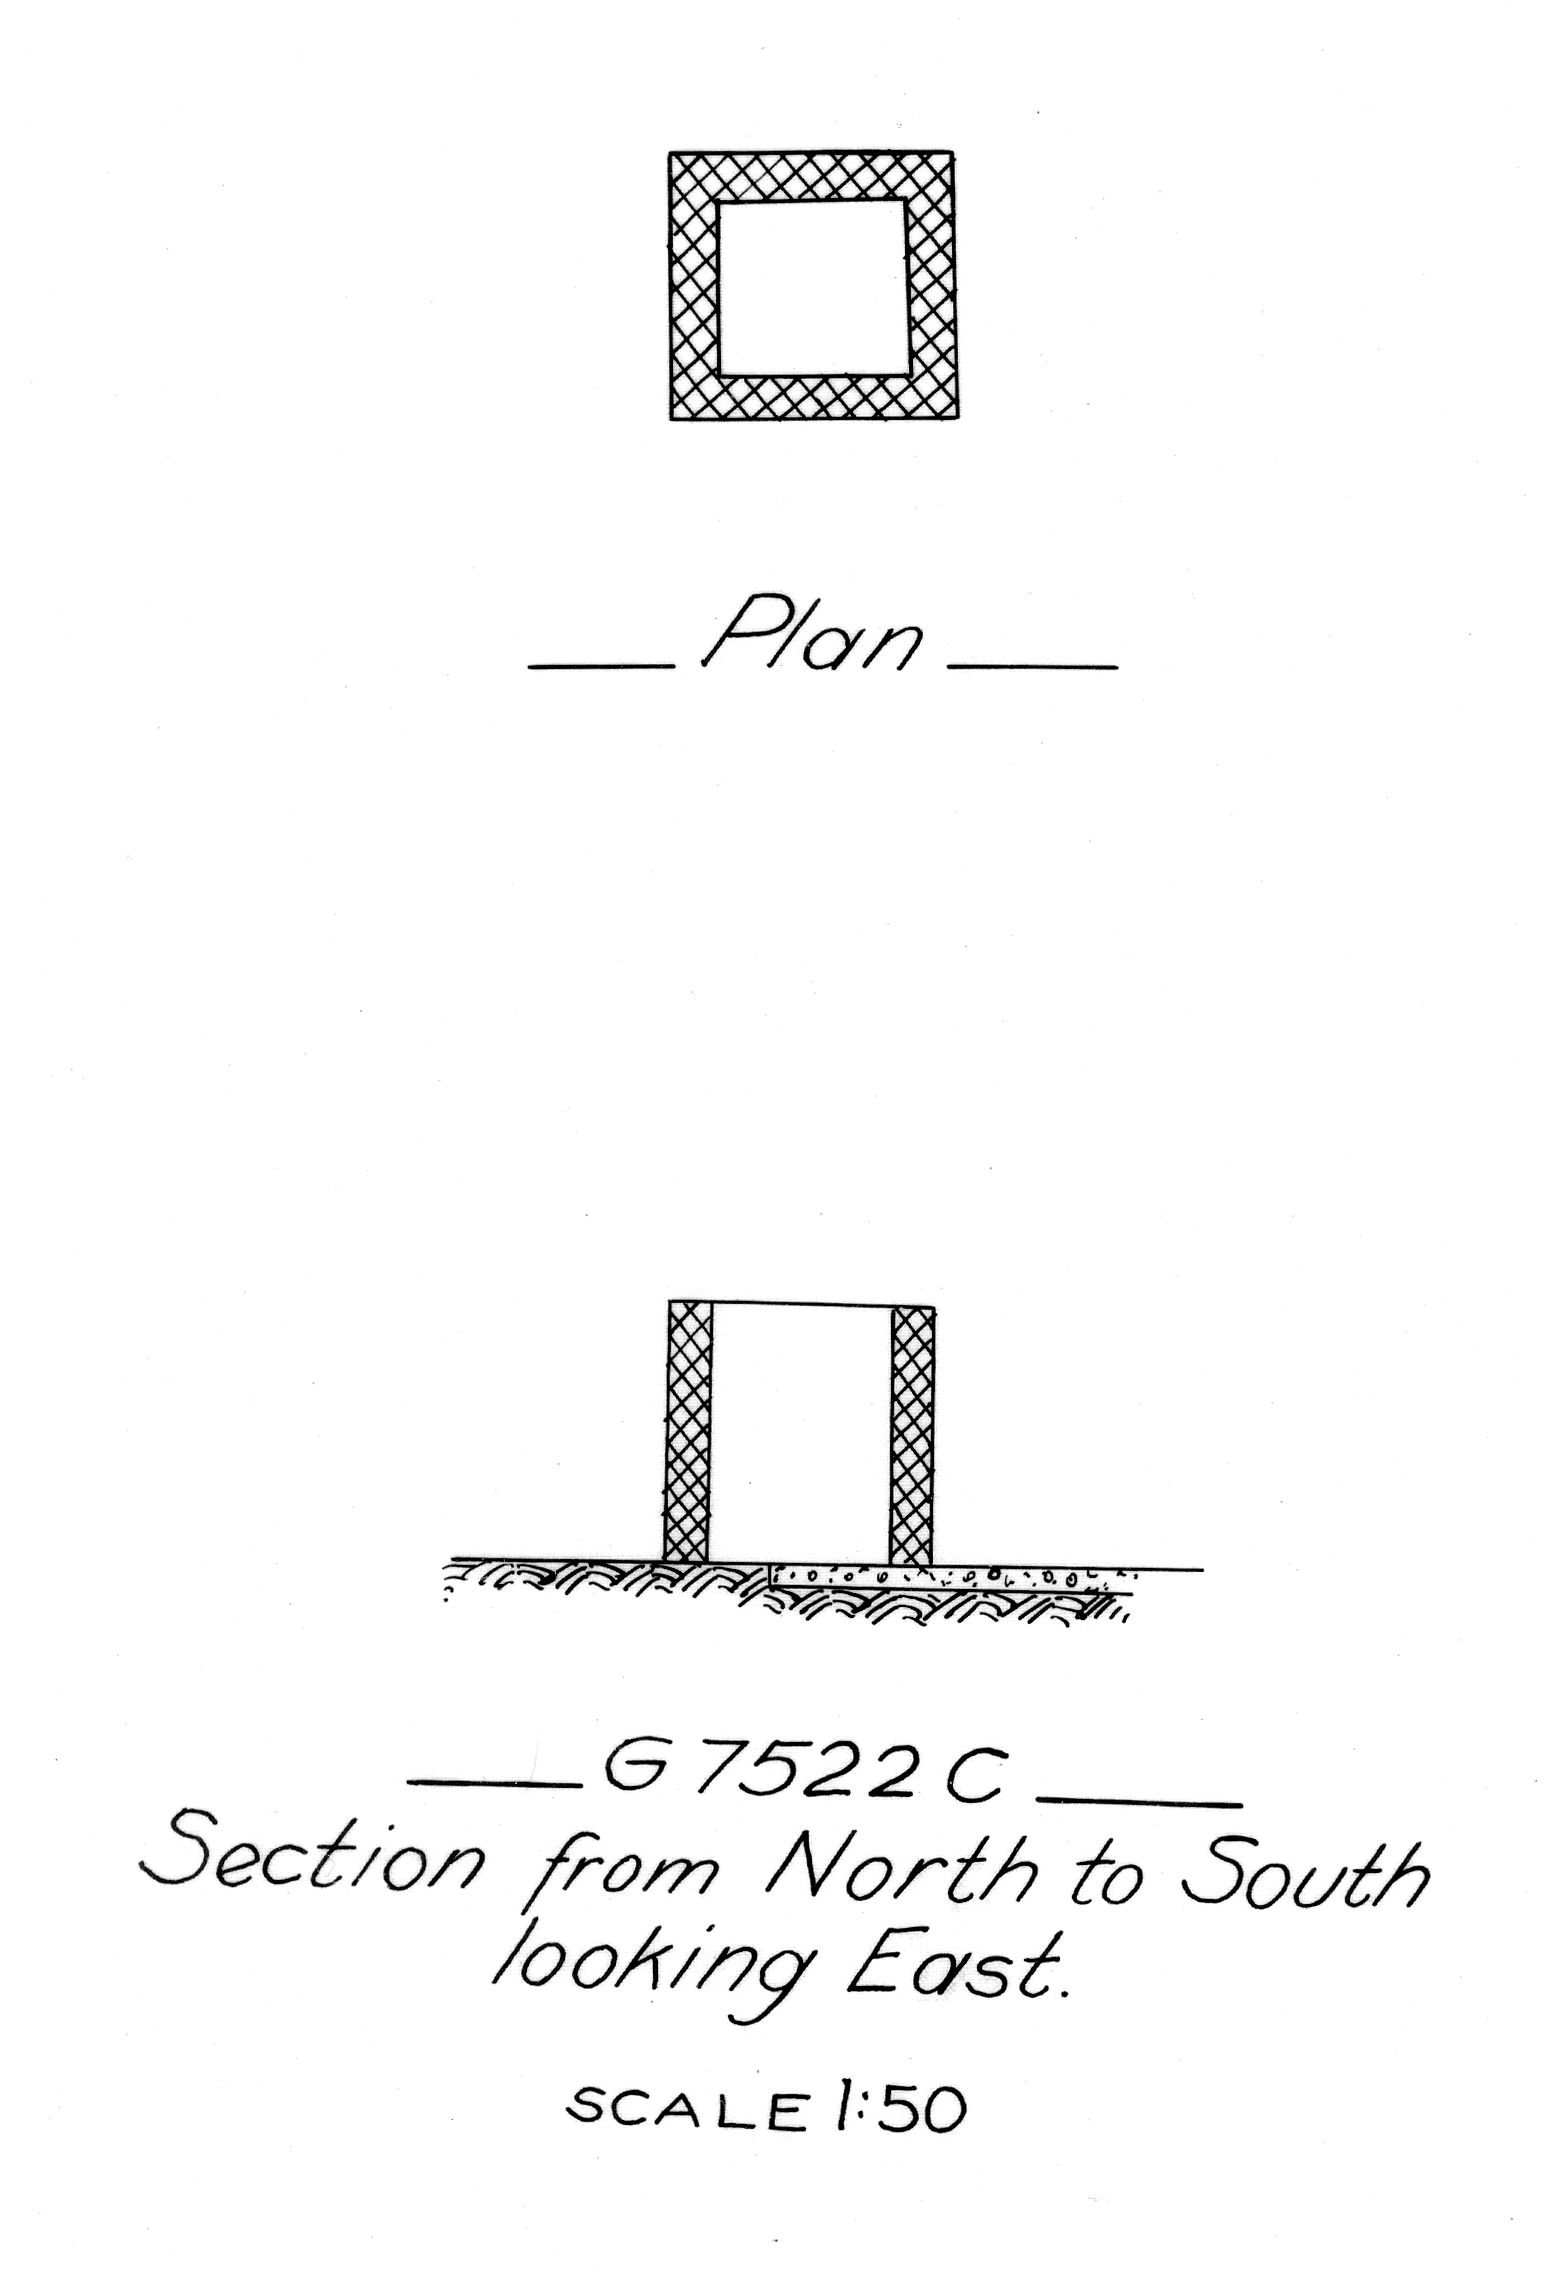 Maps and plans: G 7522, Shaft C